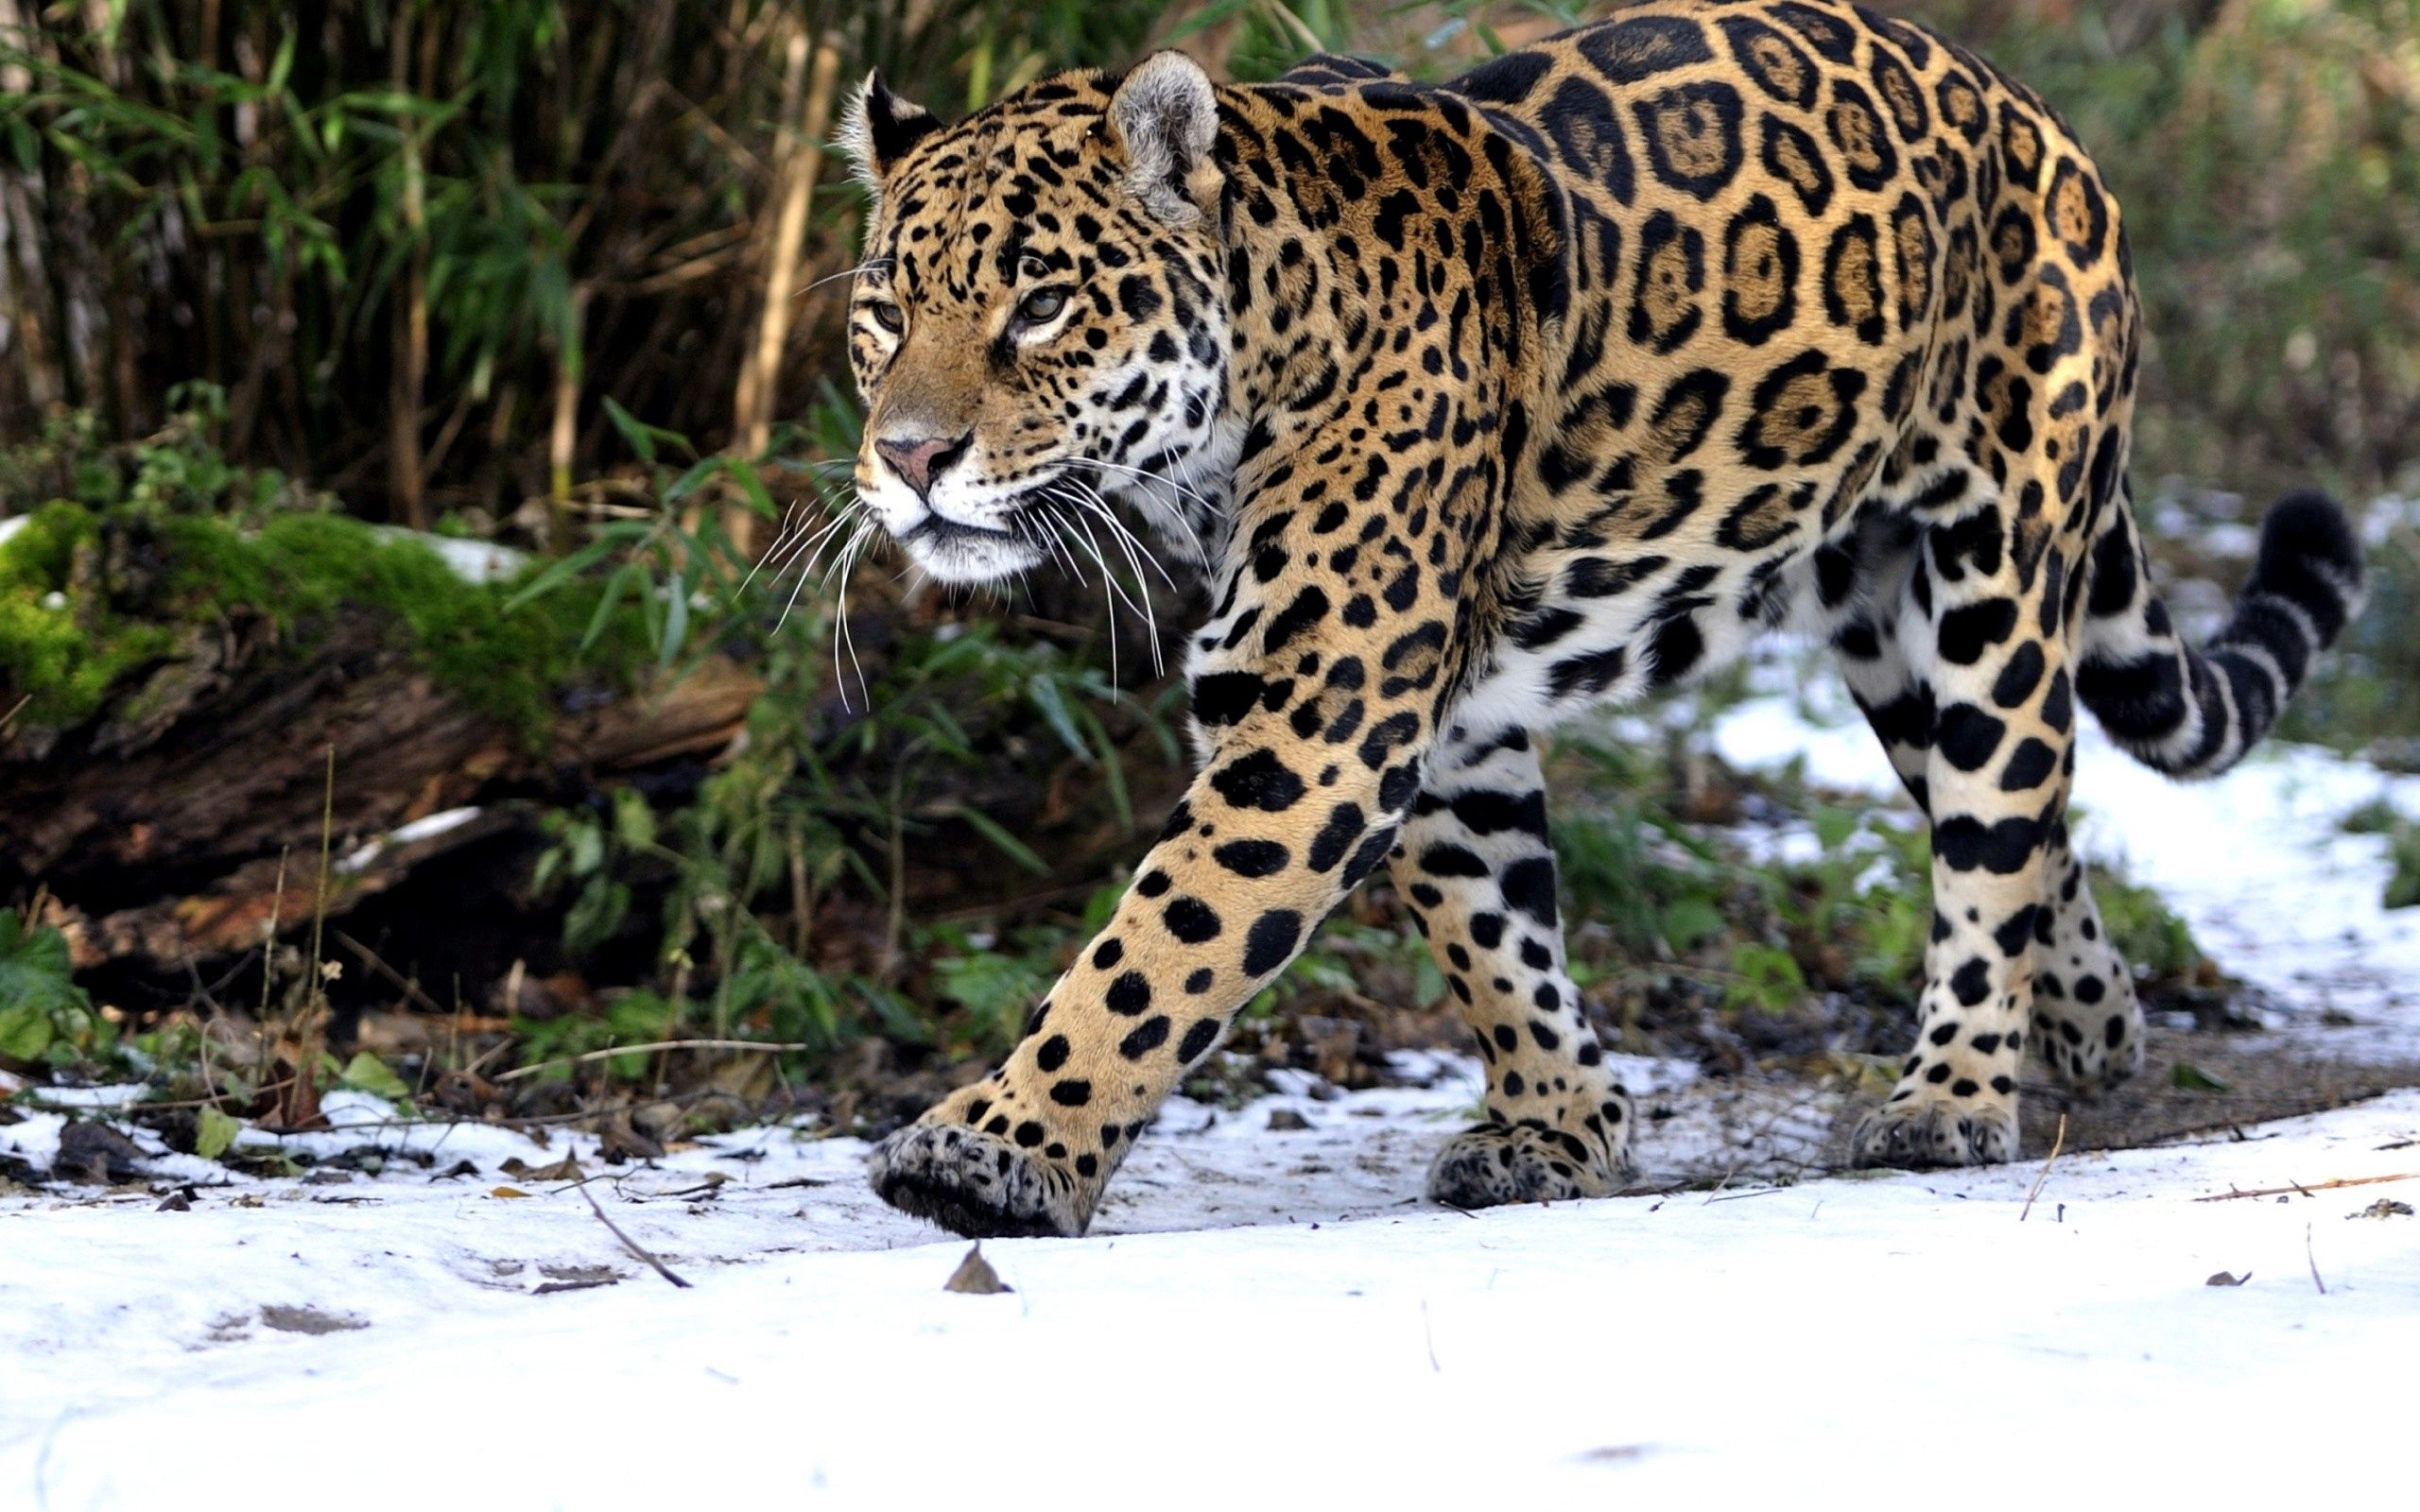 157561 download wallpaper Animals, Snow, Leopard, Predator, Stroll screensavers and pictures for free